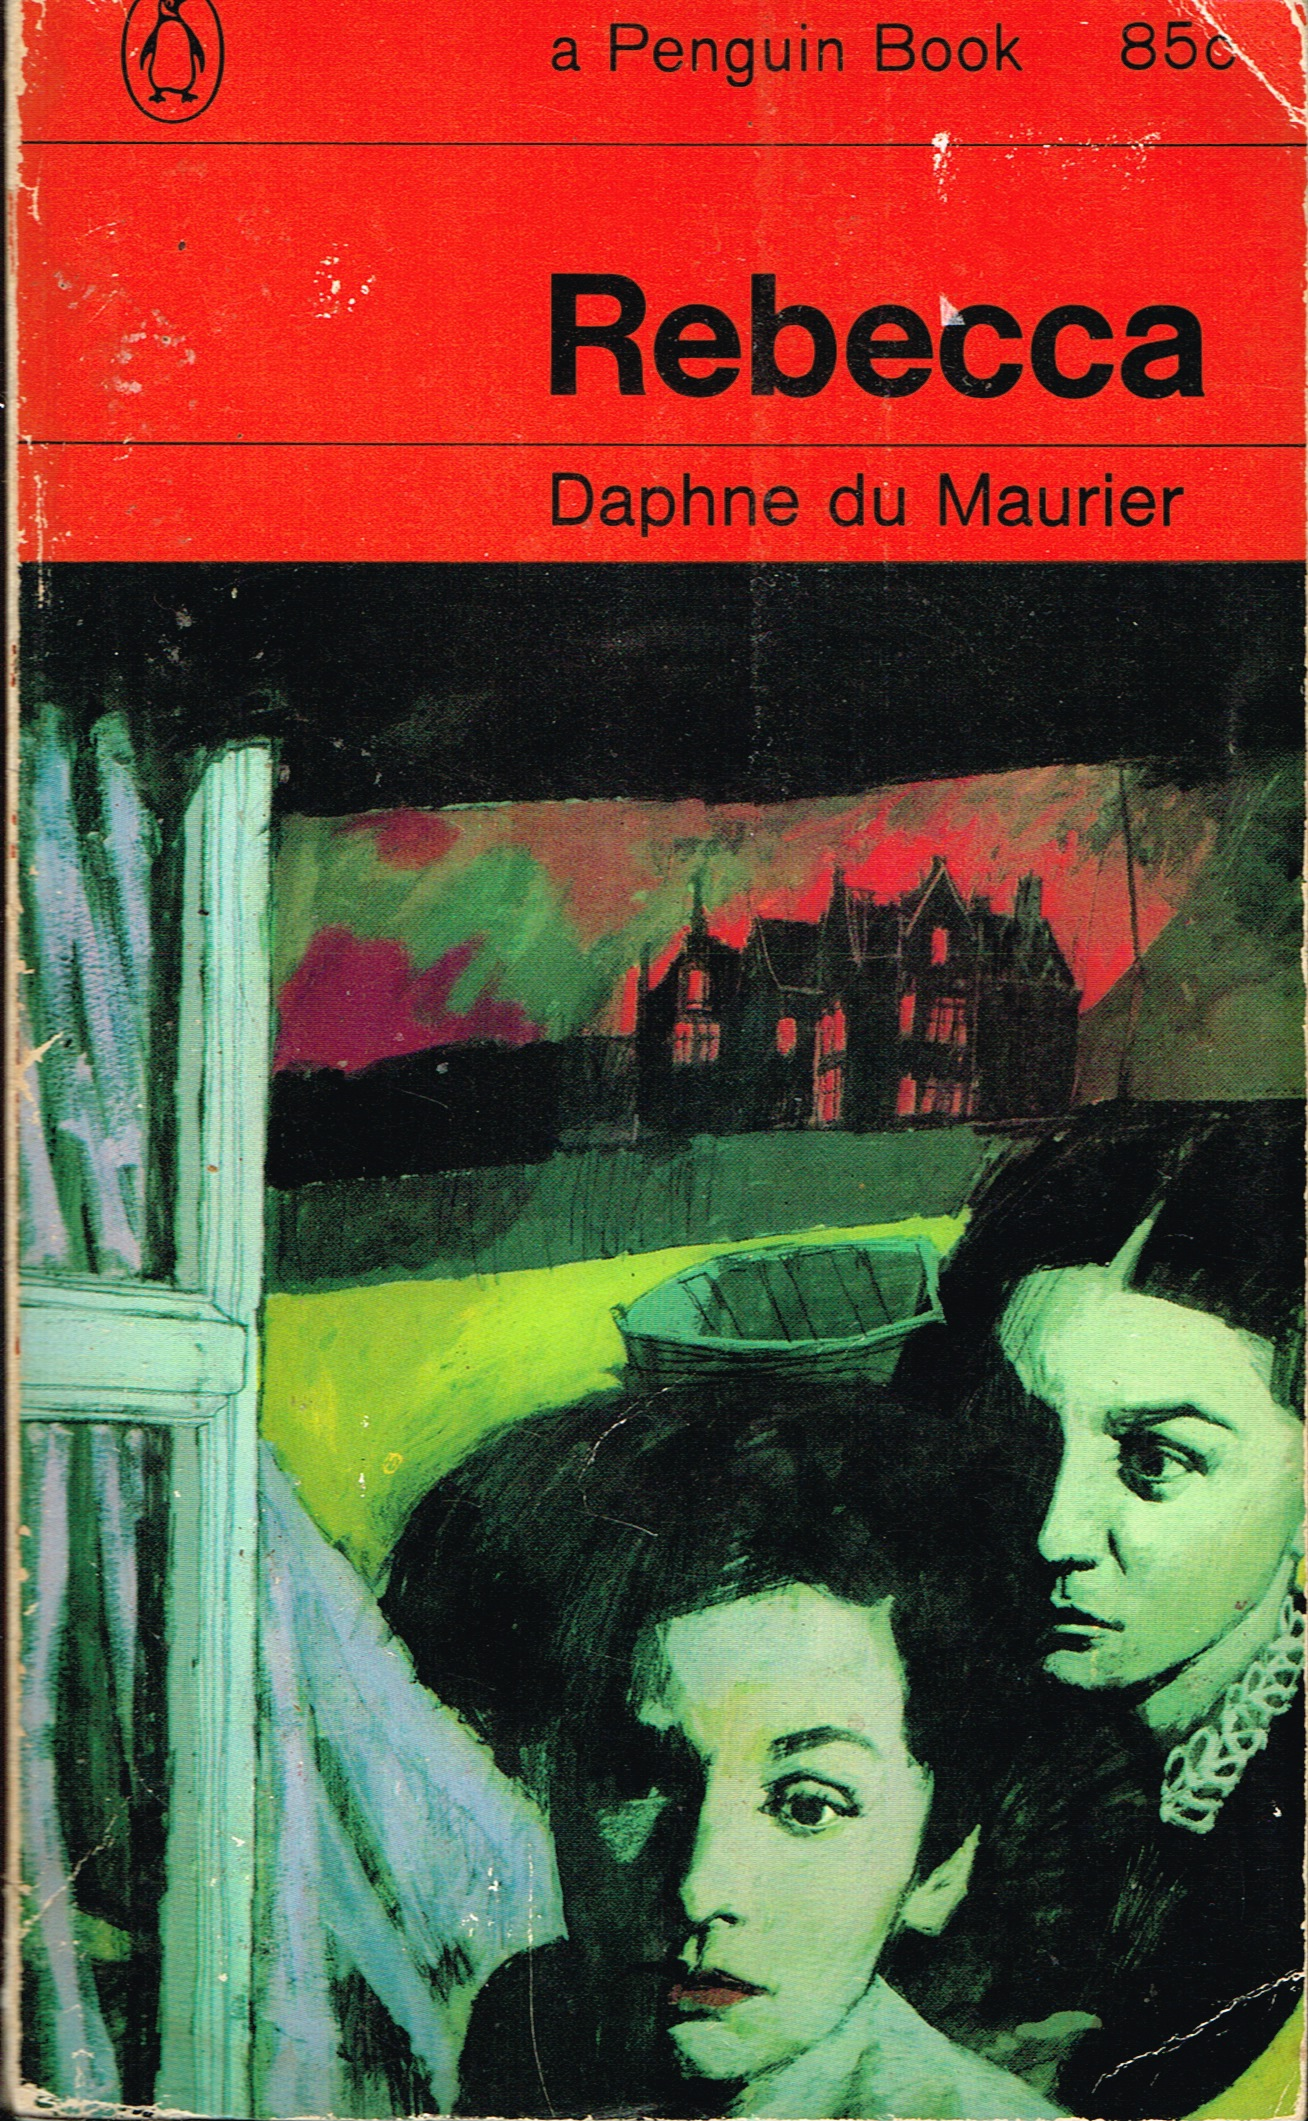 essays on rebecca by daphne du maurier The way an individual is seen and the impression that person makes upon others determines the way that person is treated if one has charisma and self confidence in one's own abilities, those around unconsciously recognise this trait and are inclined to respond with respect.